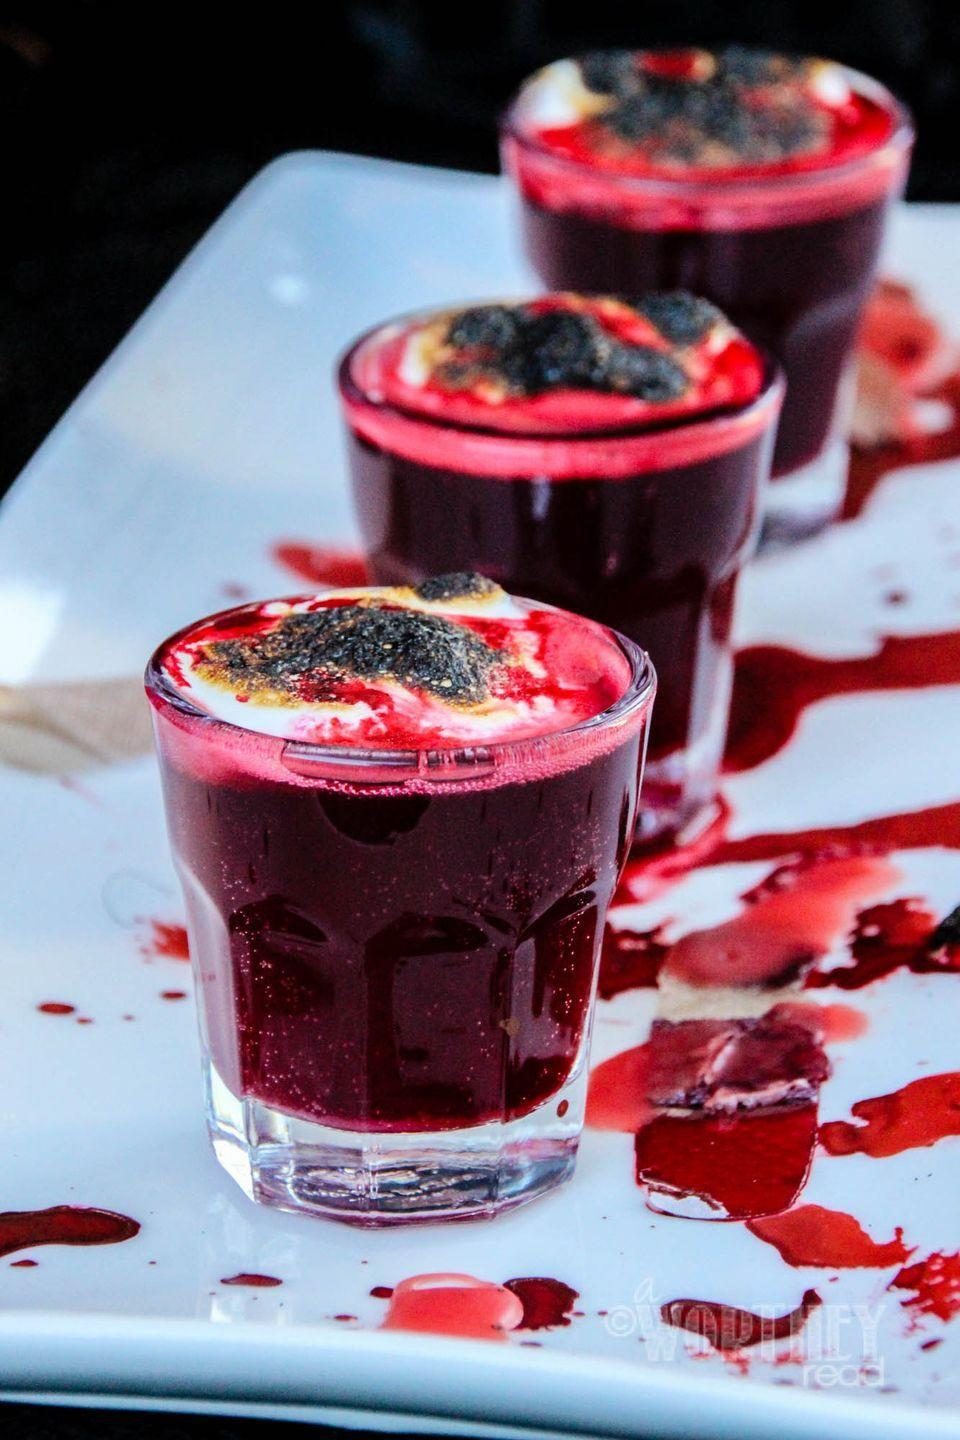 """<p>You may need a couple shots before doing this blood-inspired shot.</p><p>Get the recipe from <a href=""""http://www.awortheyread.com/blood-clot-shots-halloween-drink/"""" rel=""""nofollow noopener"""" target=""""_blank"""" data-ylk=""""slk:This Worthy Life"""" class=""""link rapid-noclick-resp"""">This Worthy Life</a>.<br></p>"""